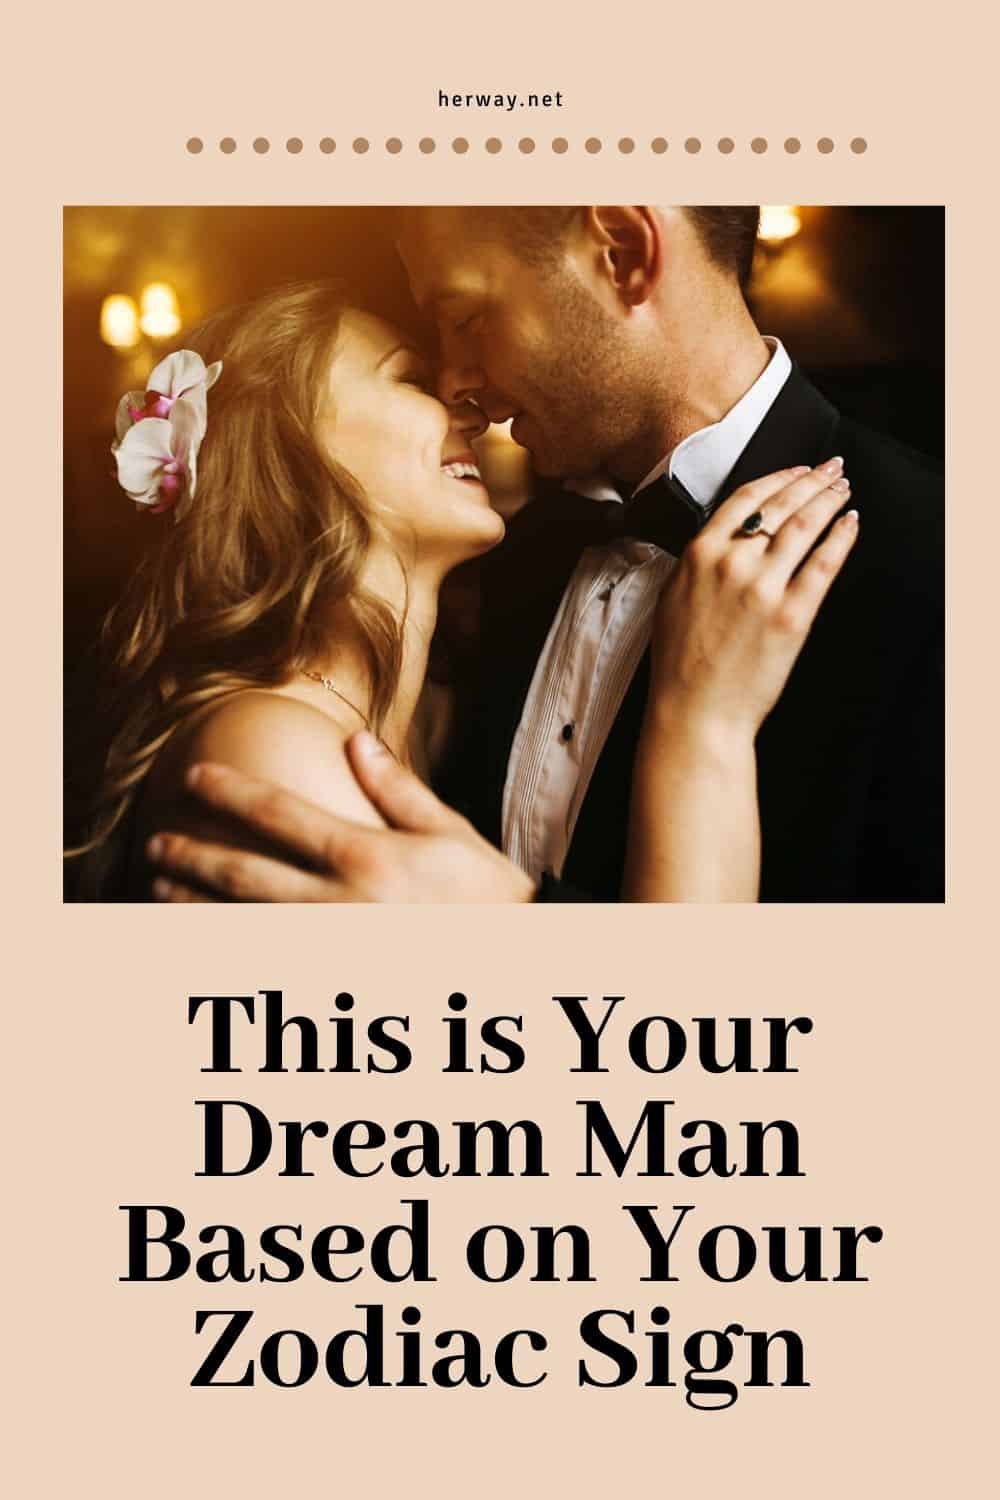 This is Your Dream Man Based on Your Zodiac Sign